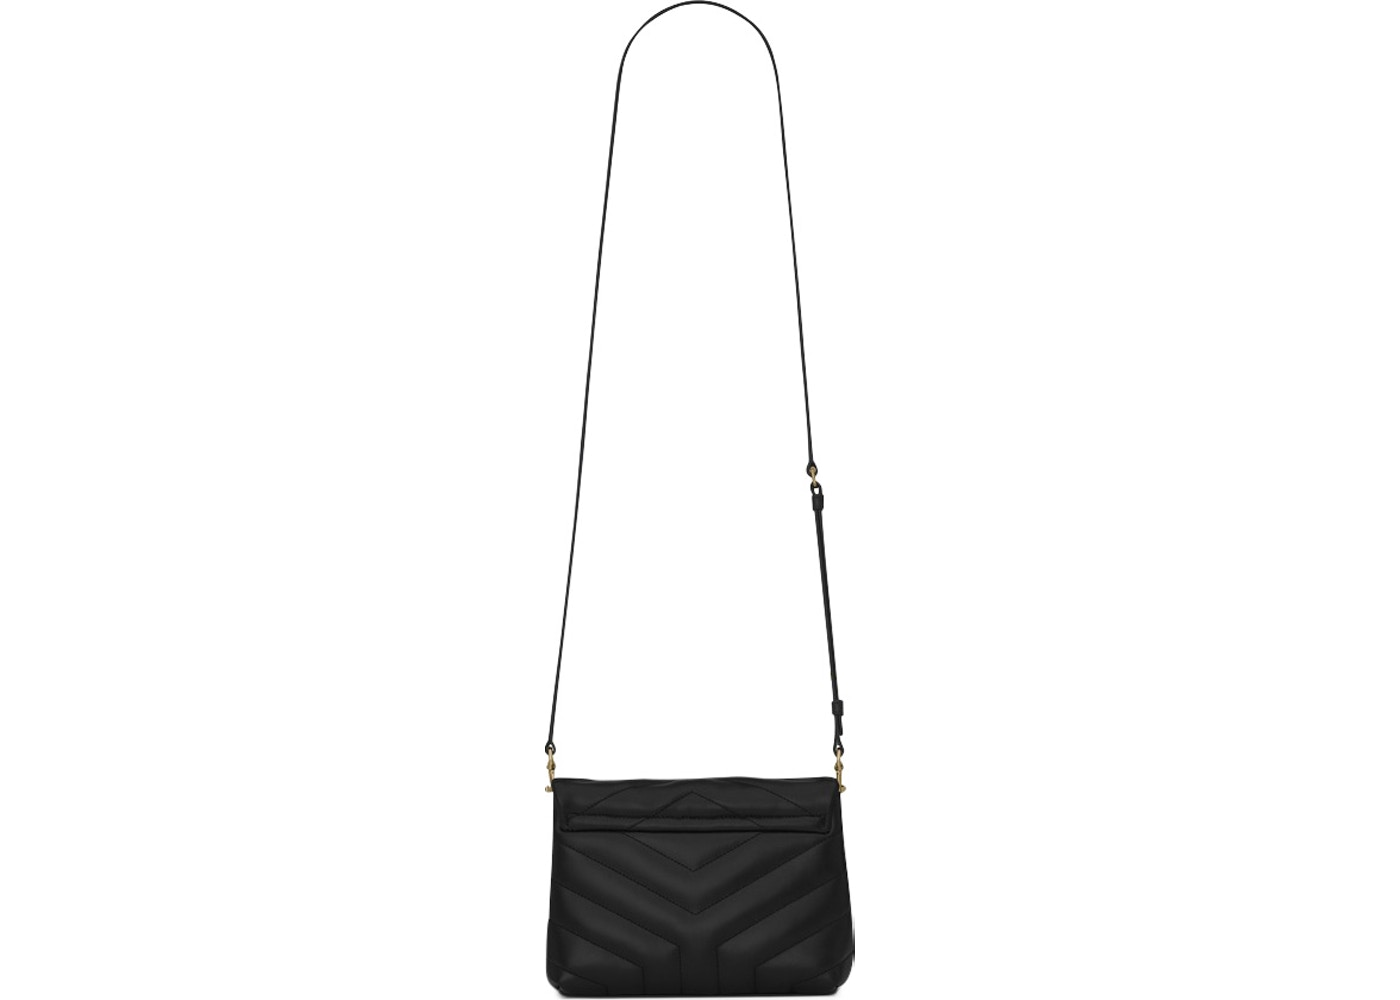 f3259d75cd Sell. or Ask. View All Bids. Saint Laurent Loulou Toy Bag Matelasse Y  Leather ...